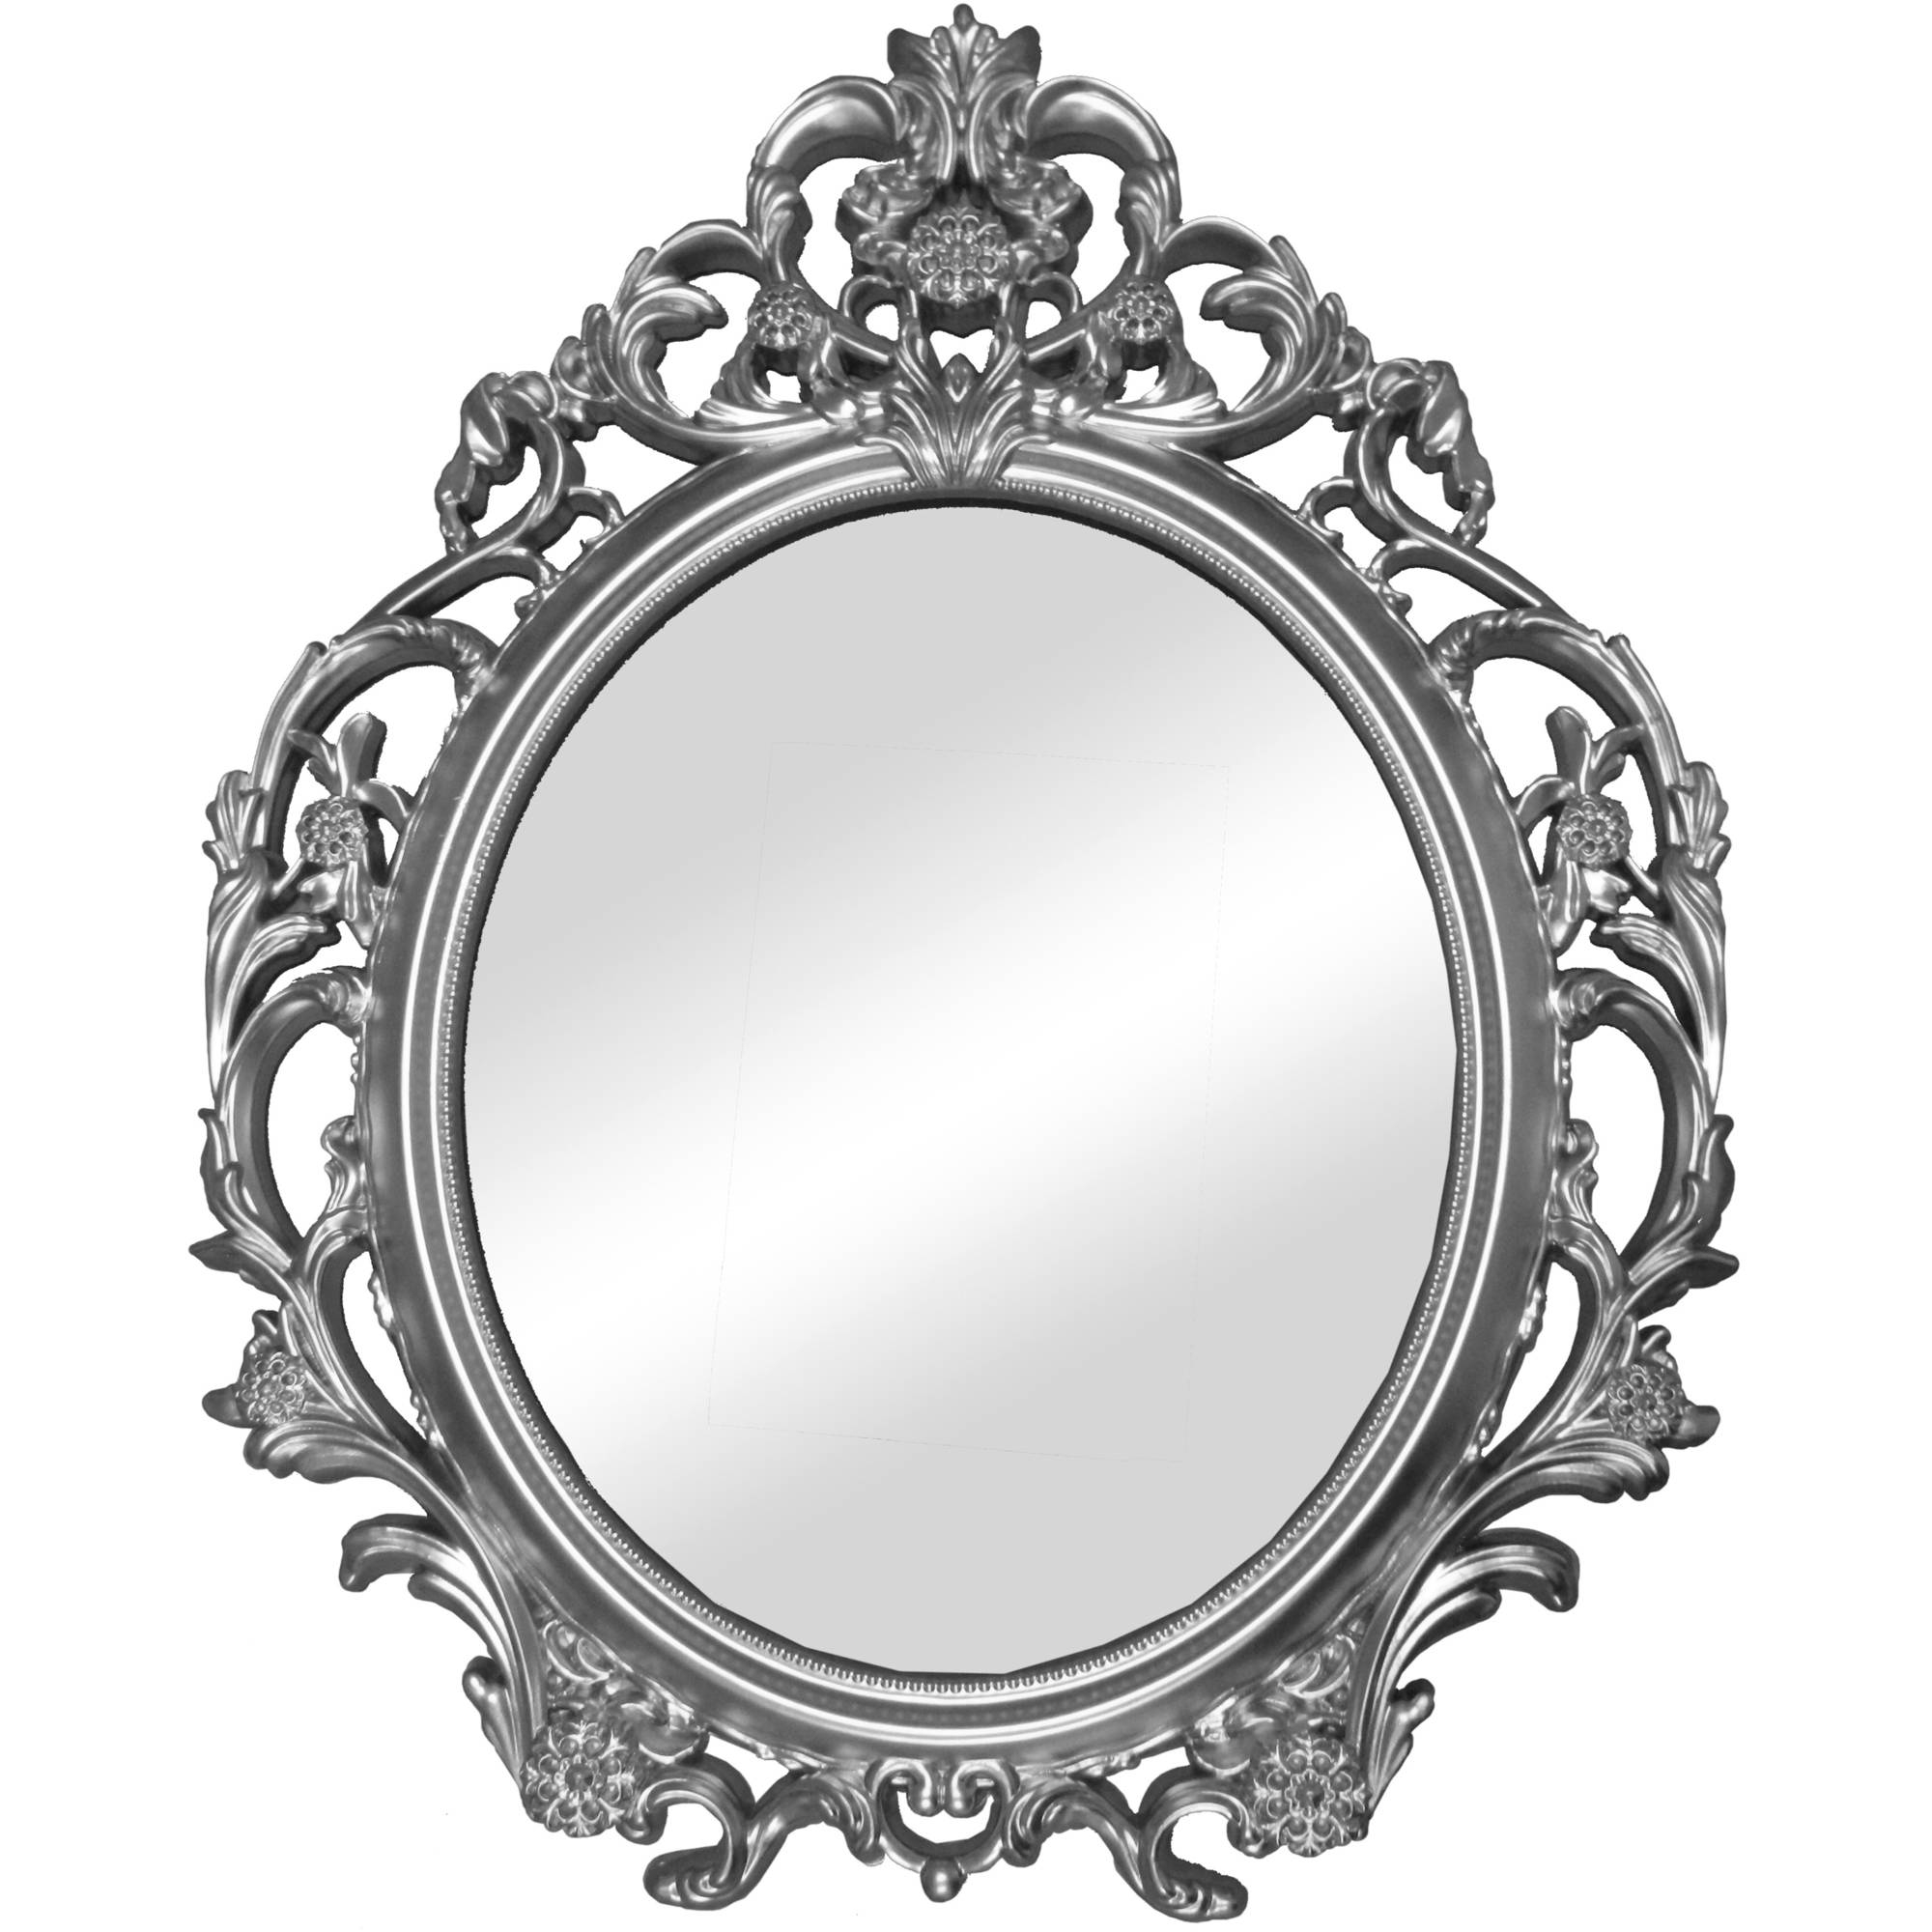 Better Homes And Gardens Baroque Wall Mirror Walmart In White Baroque Wall Mirror (Image 3 of 15)